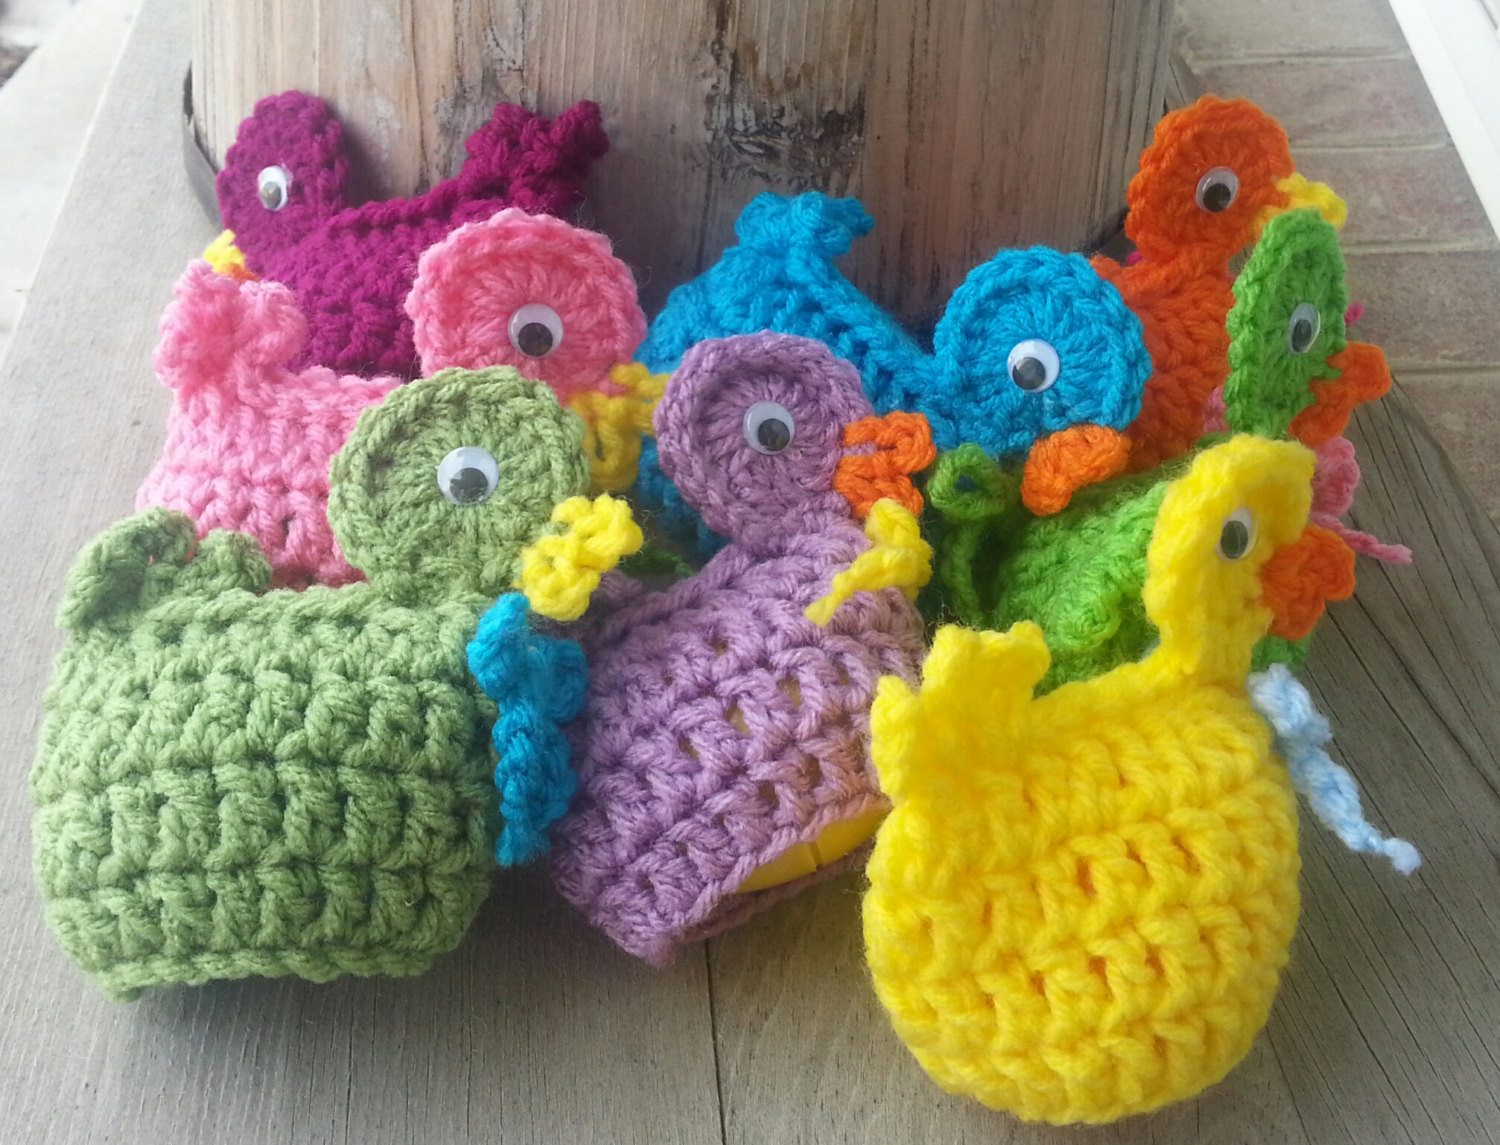 Crochet Easter Eggs New Crochet Easter Egg Duck Cozy Fun Seasonal & Cute Covers Of Incredible 43 Ideas Crochet Easter Eggs